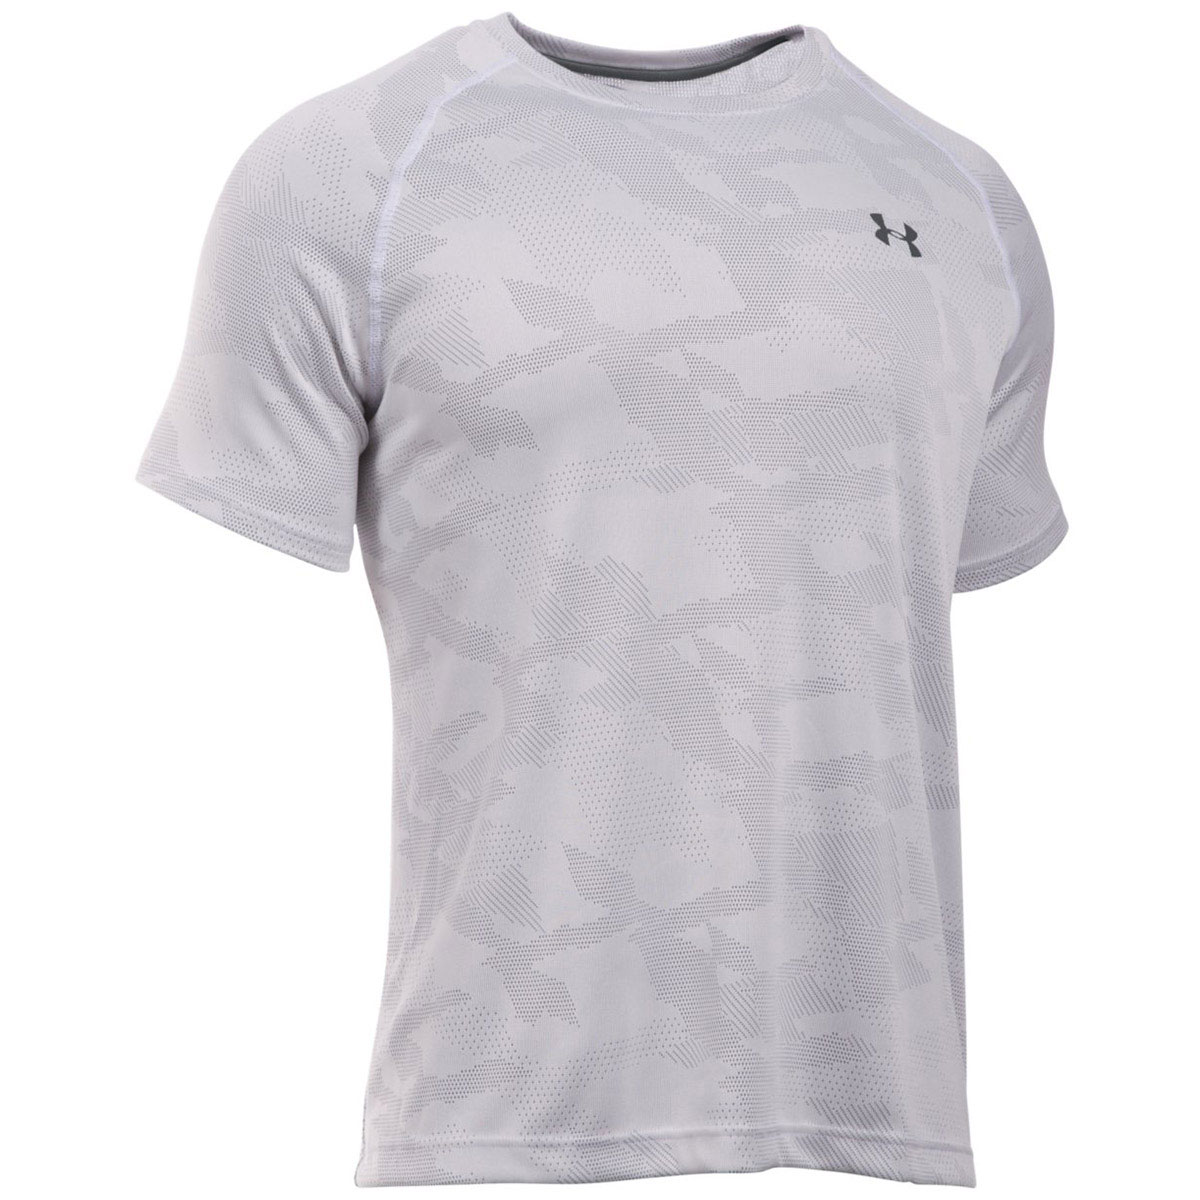 Under Armour 2016 Mens Ua Jacquard Performance Tech Short